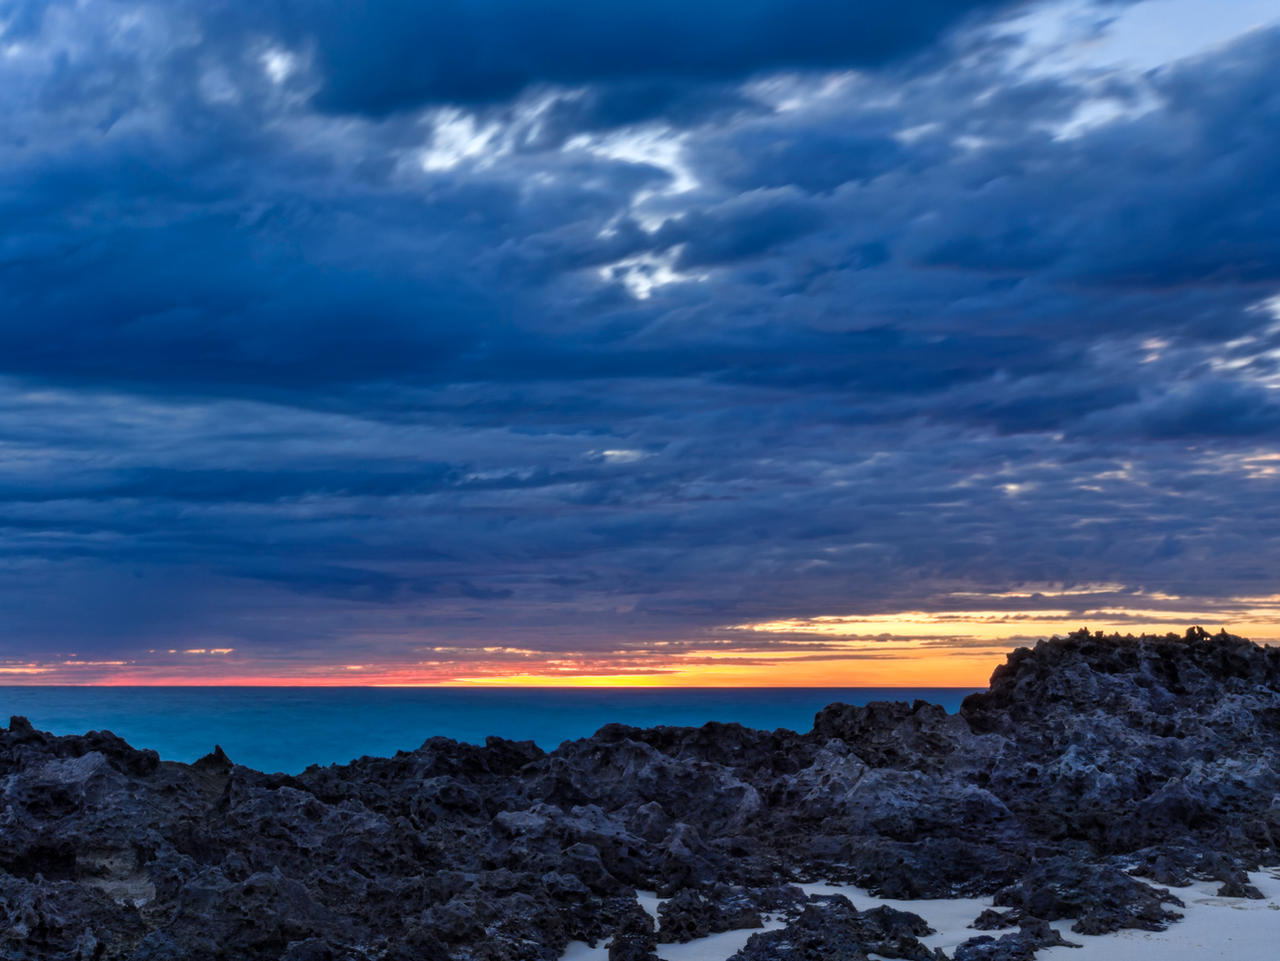 Sharprock sunset. by peterpateman